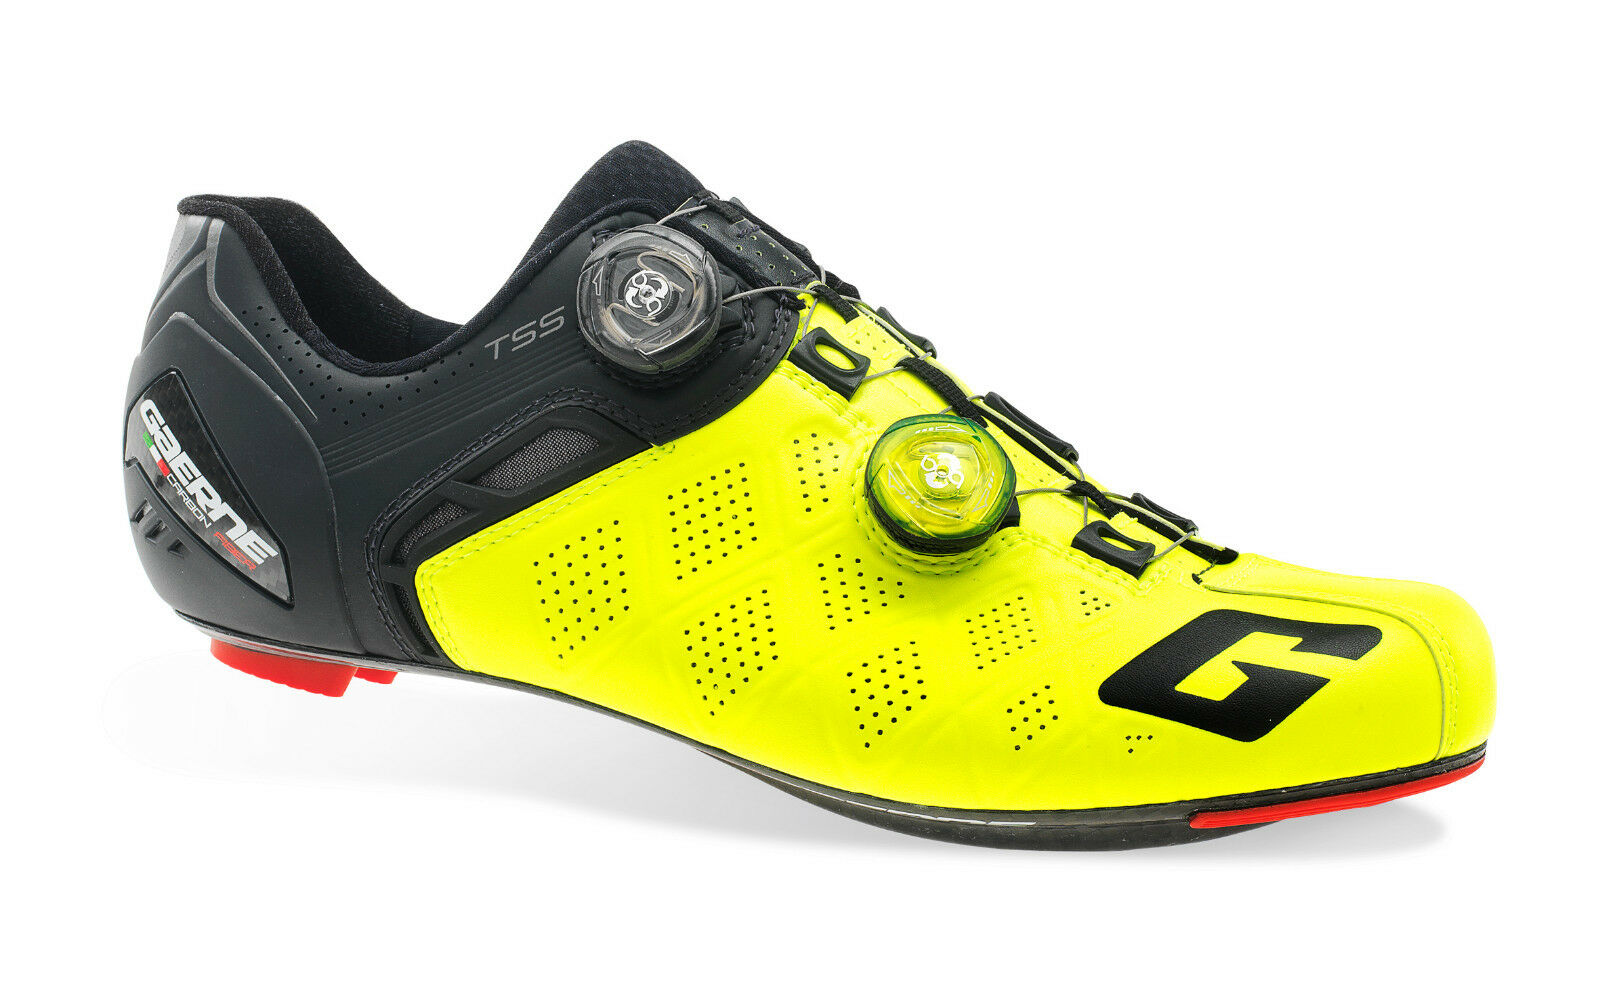 Gaerne Carbon G.Stilo+ Road Cycling shoes - Yellow (Reg.   499.99)  the newest brands outlet online